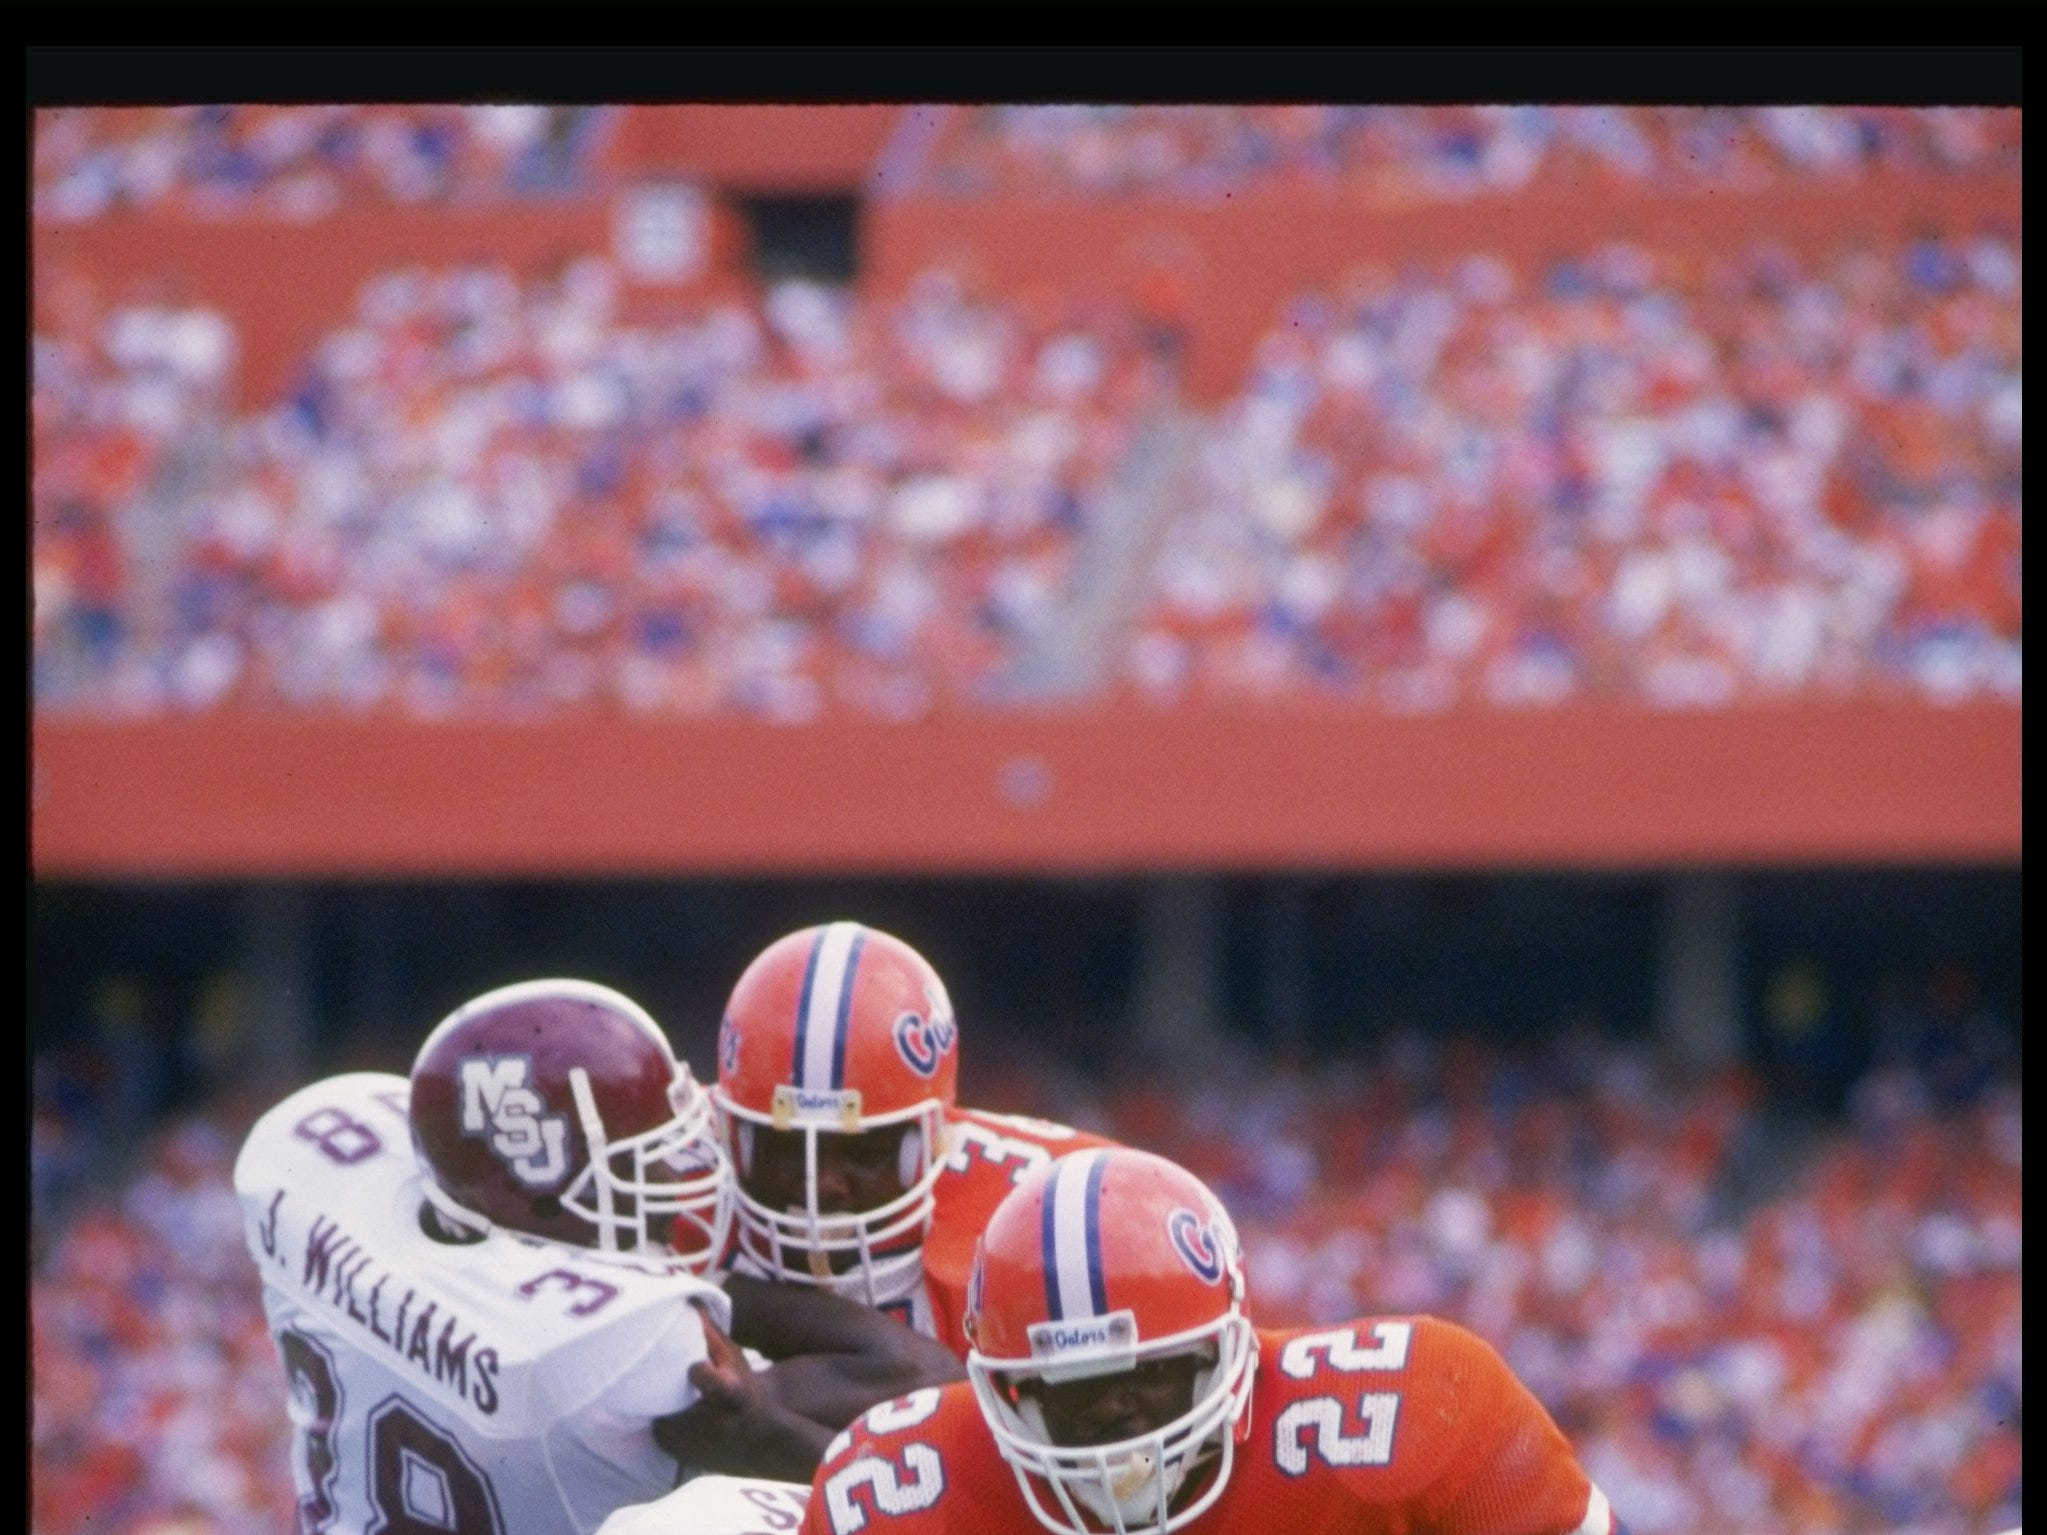 1988:  Running back Emmitt Smith of the Florida Gators runs down the field during a game against the Mississippi State Bulldogs at Florida Field in Gainesville, Florida.  Mandatory Credit: Allen Dean Steele  /Allsport